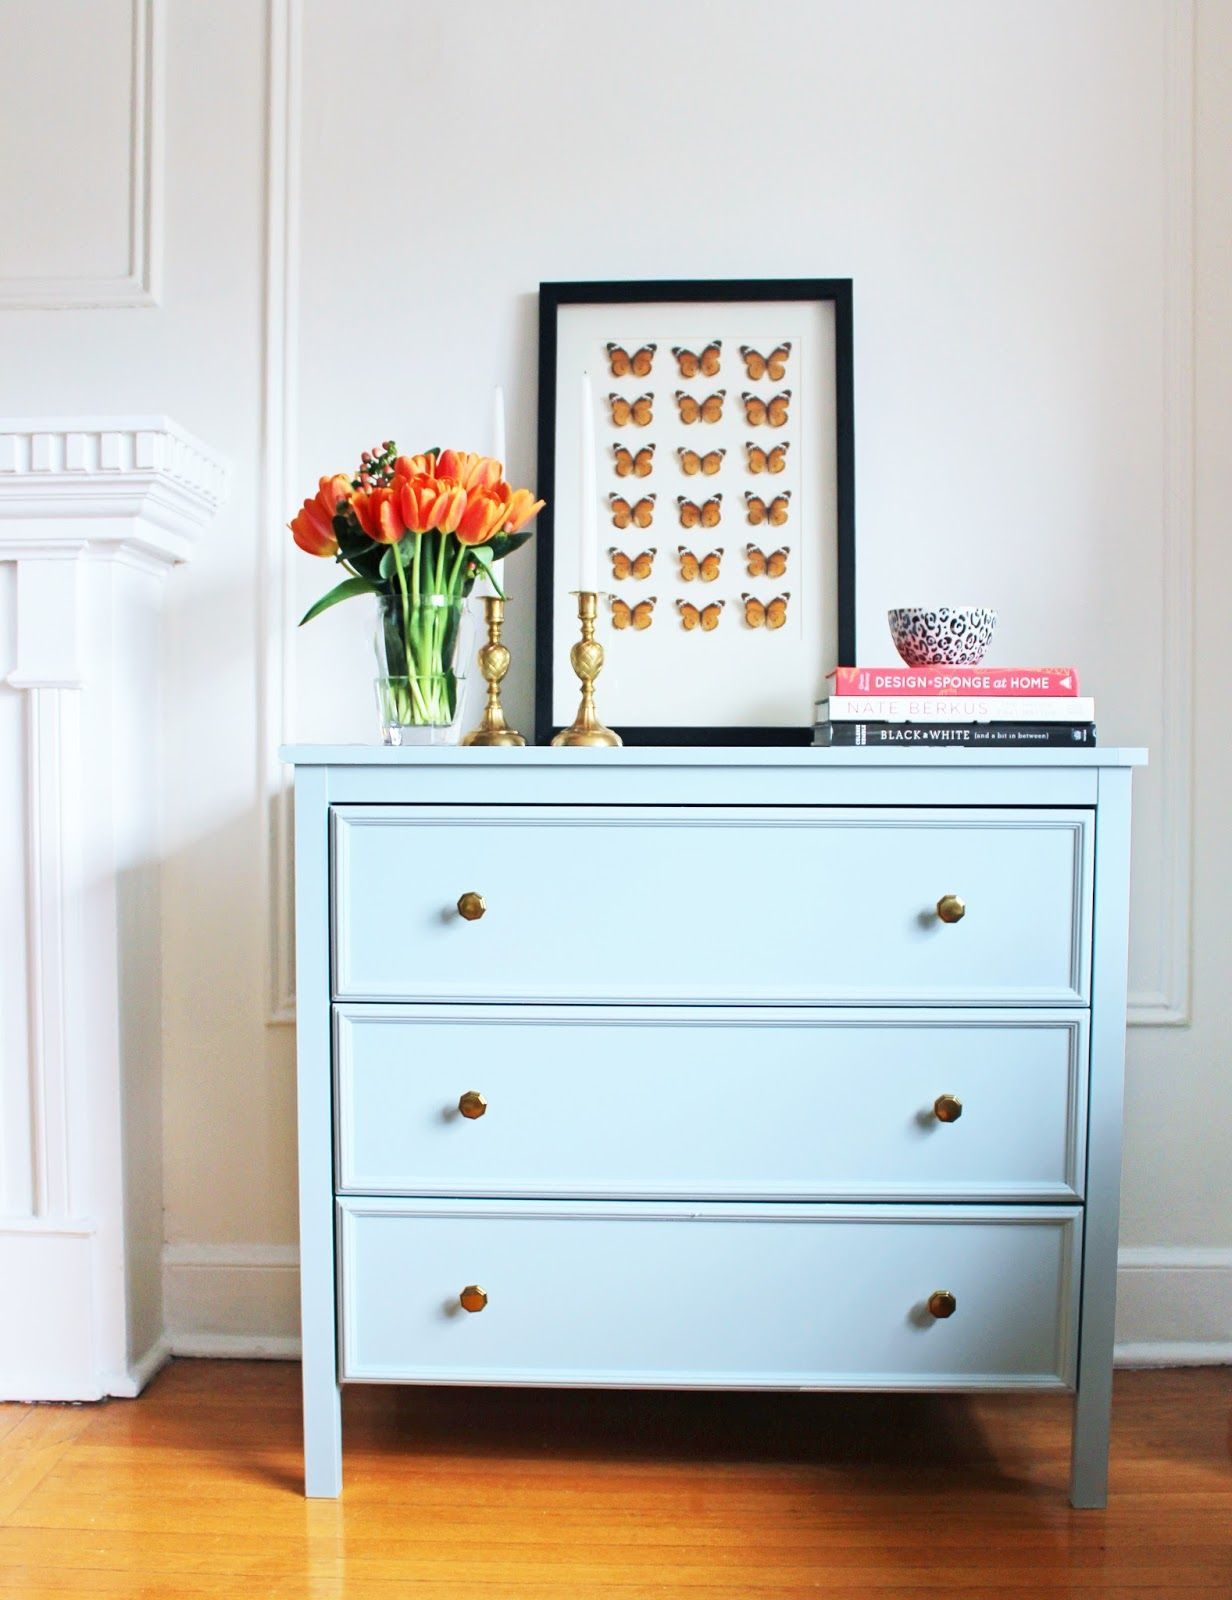 Ikea bedroom furniture chest of drawers - Tiffany Leigh Interior Design Diy Ikea Hack Chest Of Drawers